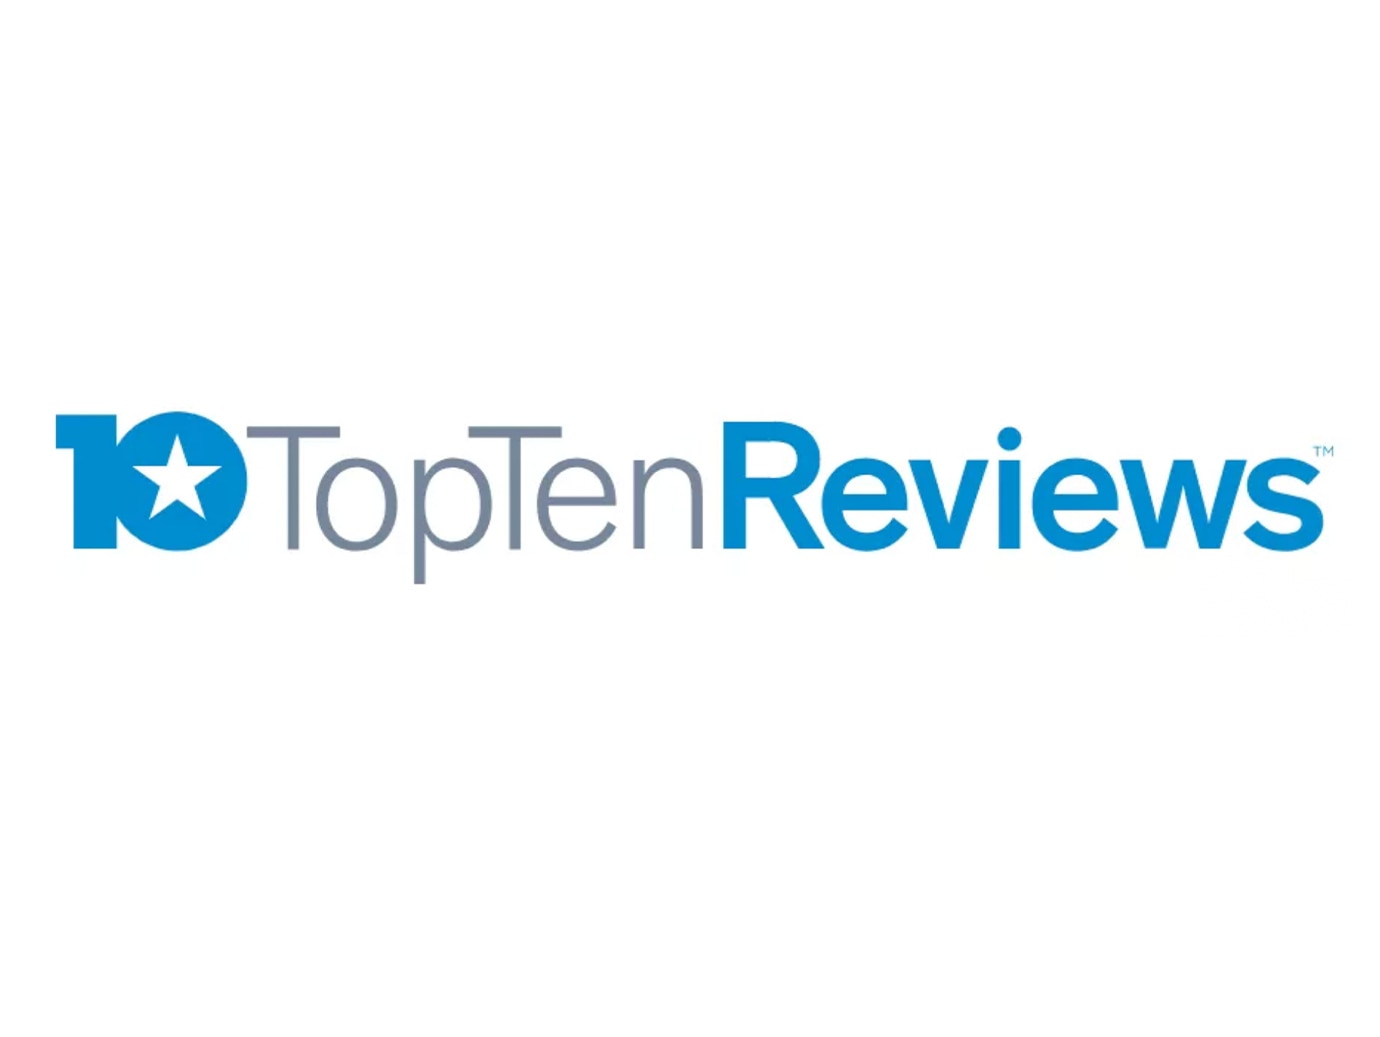 YORK® | Top Ten Reviews